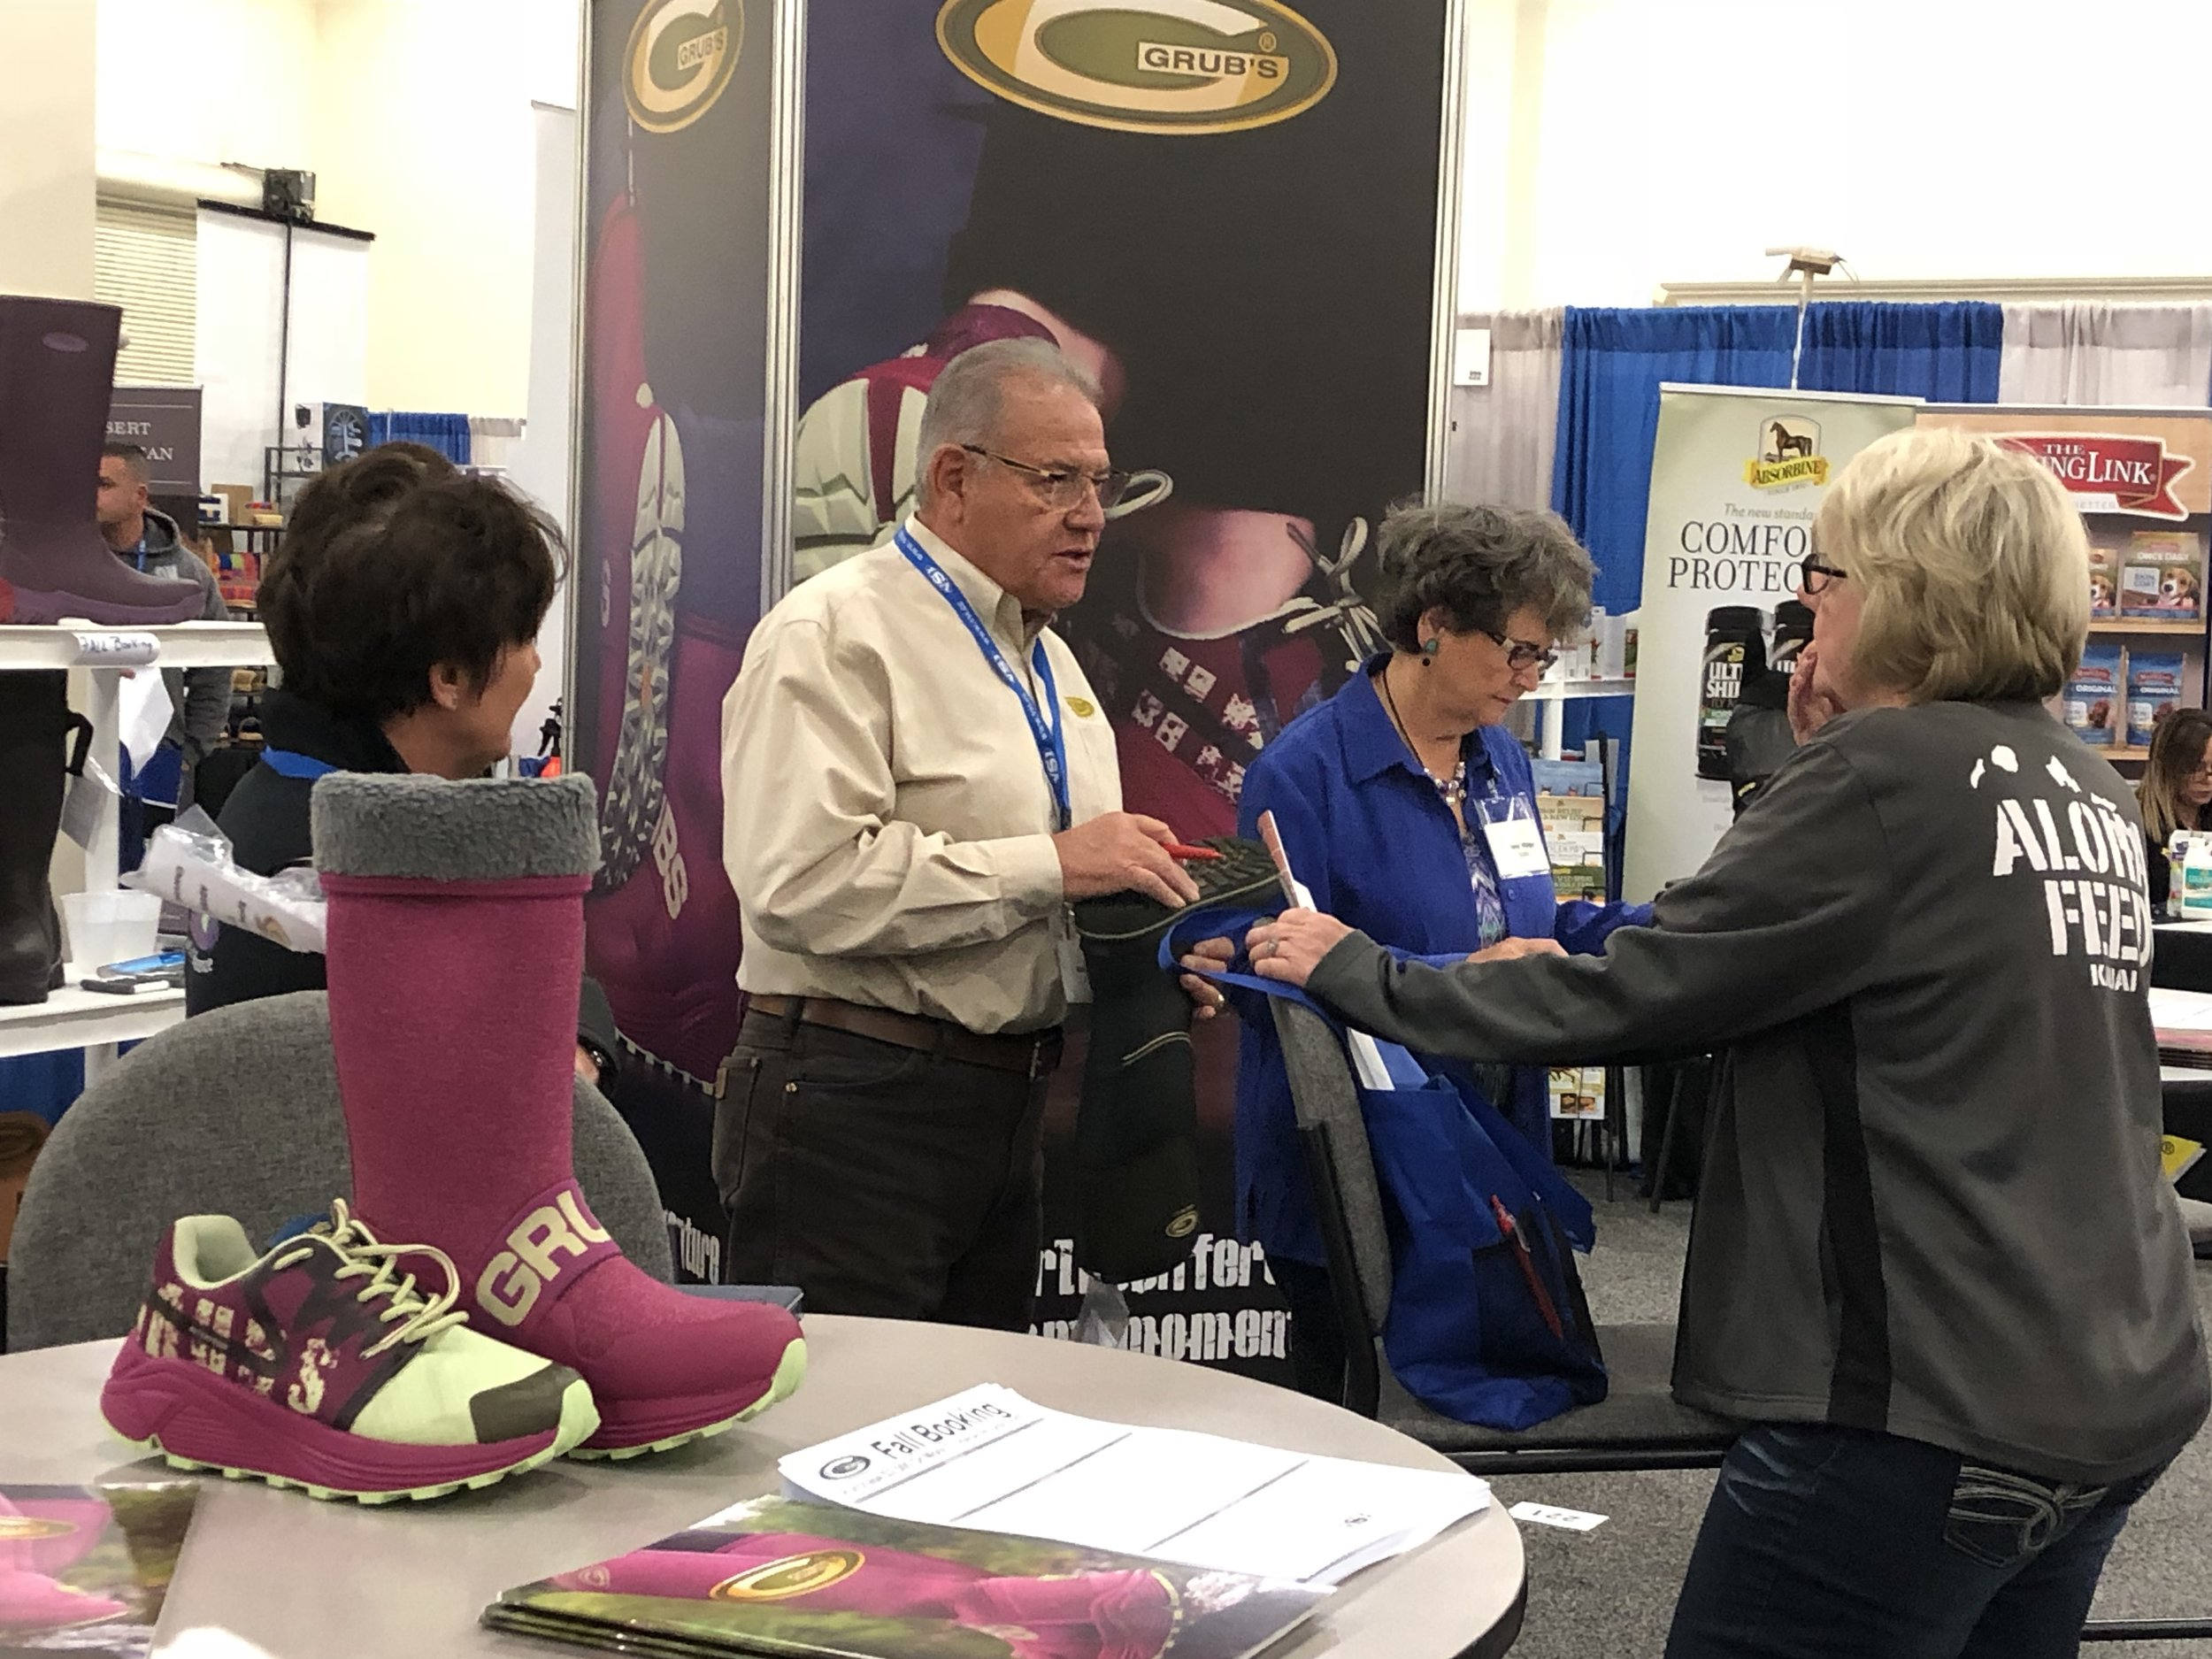 Grubs spotlight booth was a hit with retailers